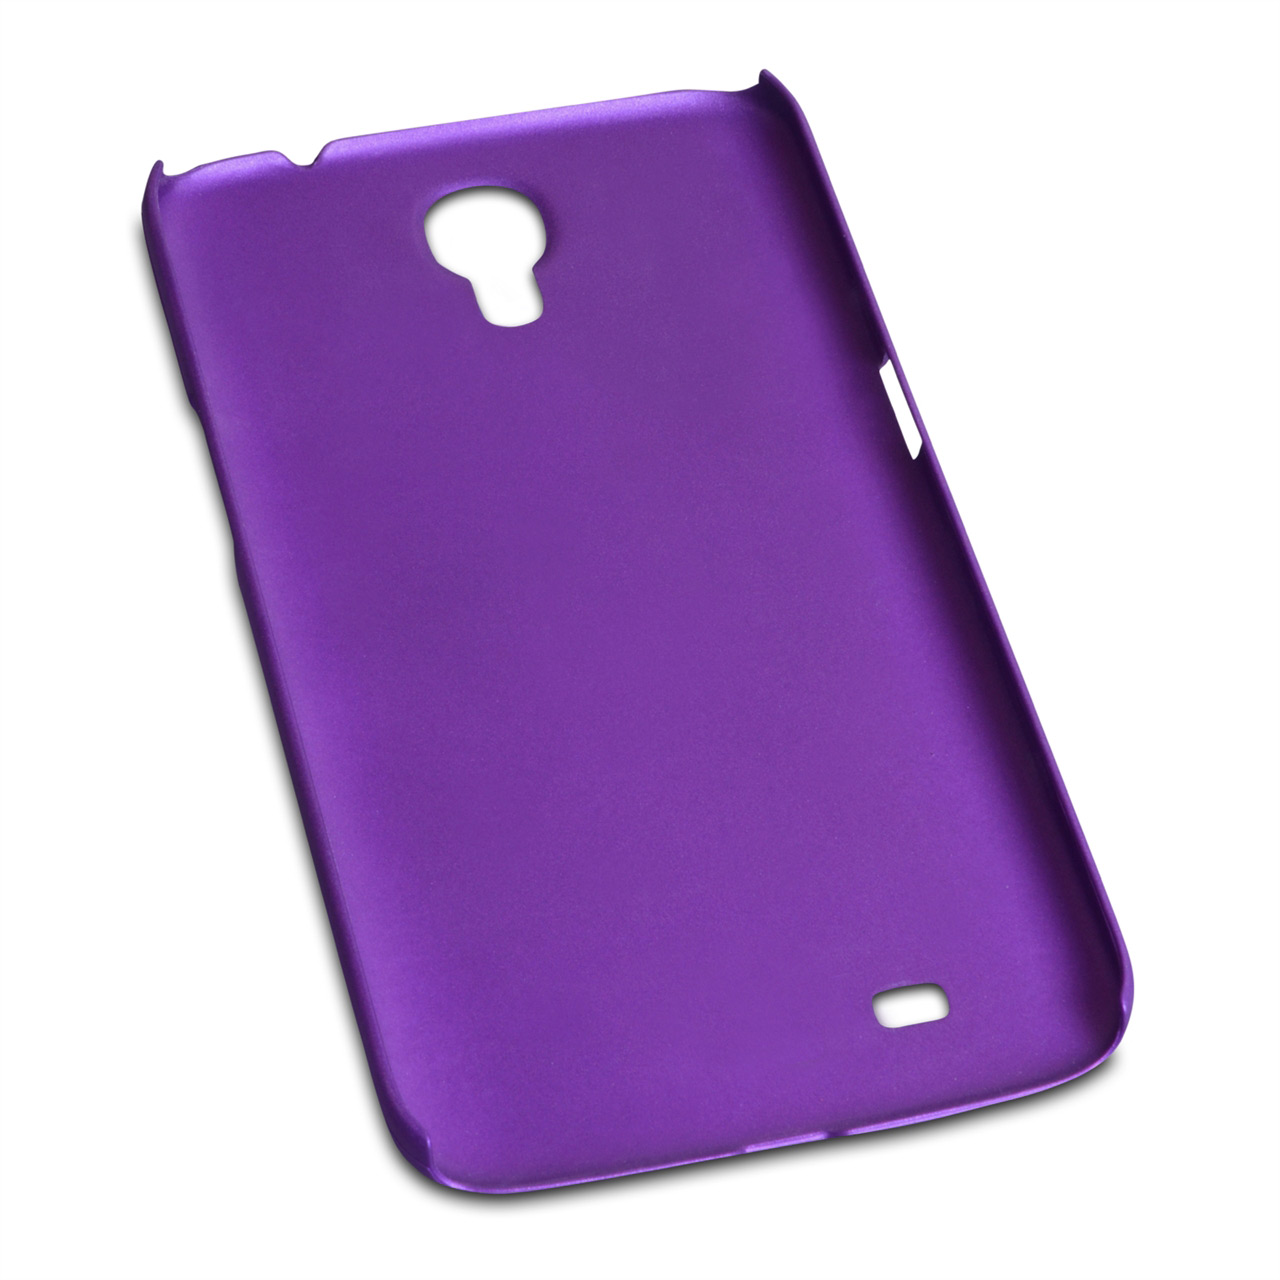 YouSave Accessories Samsung Galaxy Mega 6.3 Hard Hybrid Case - Purple